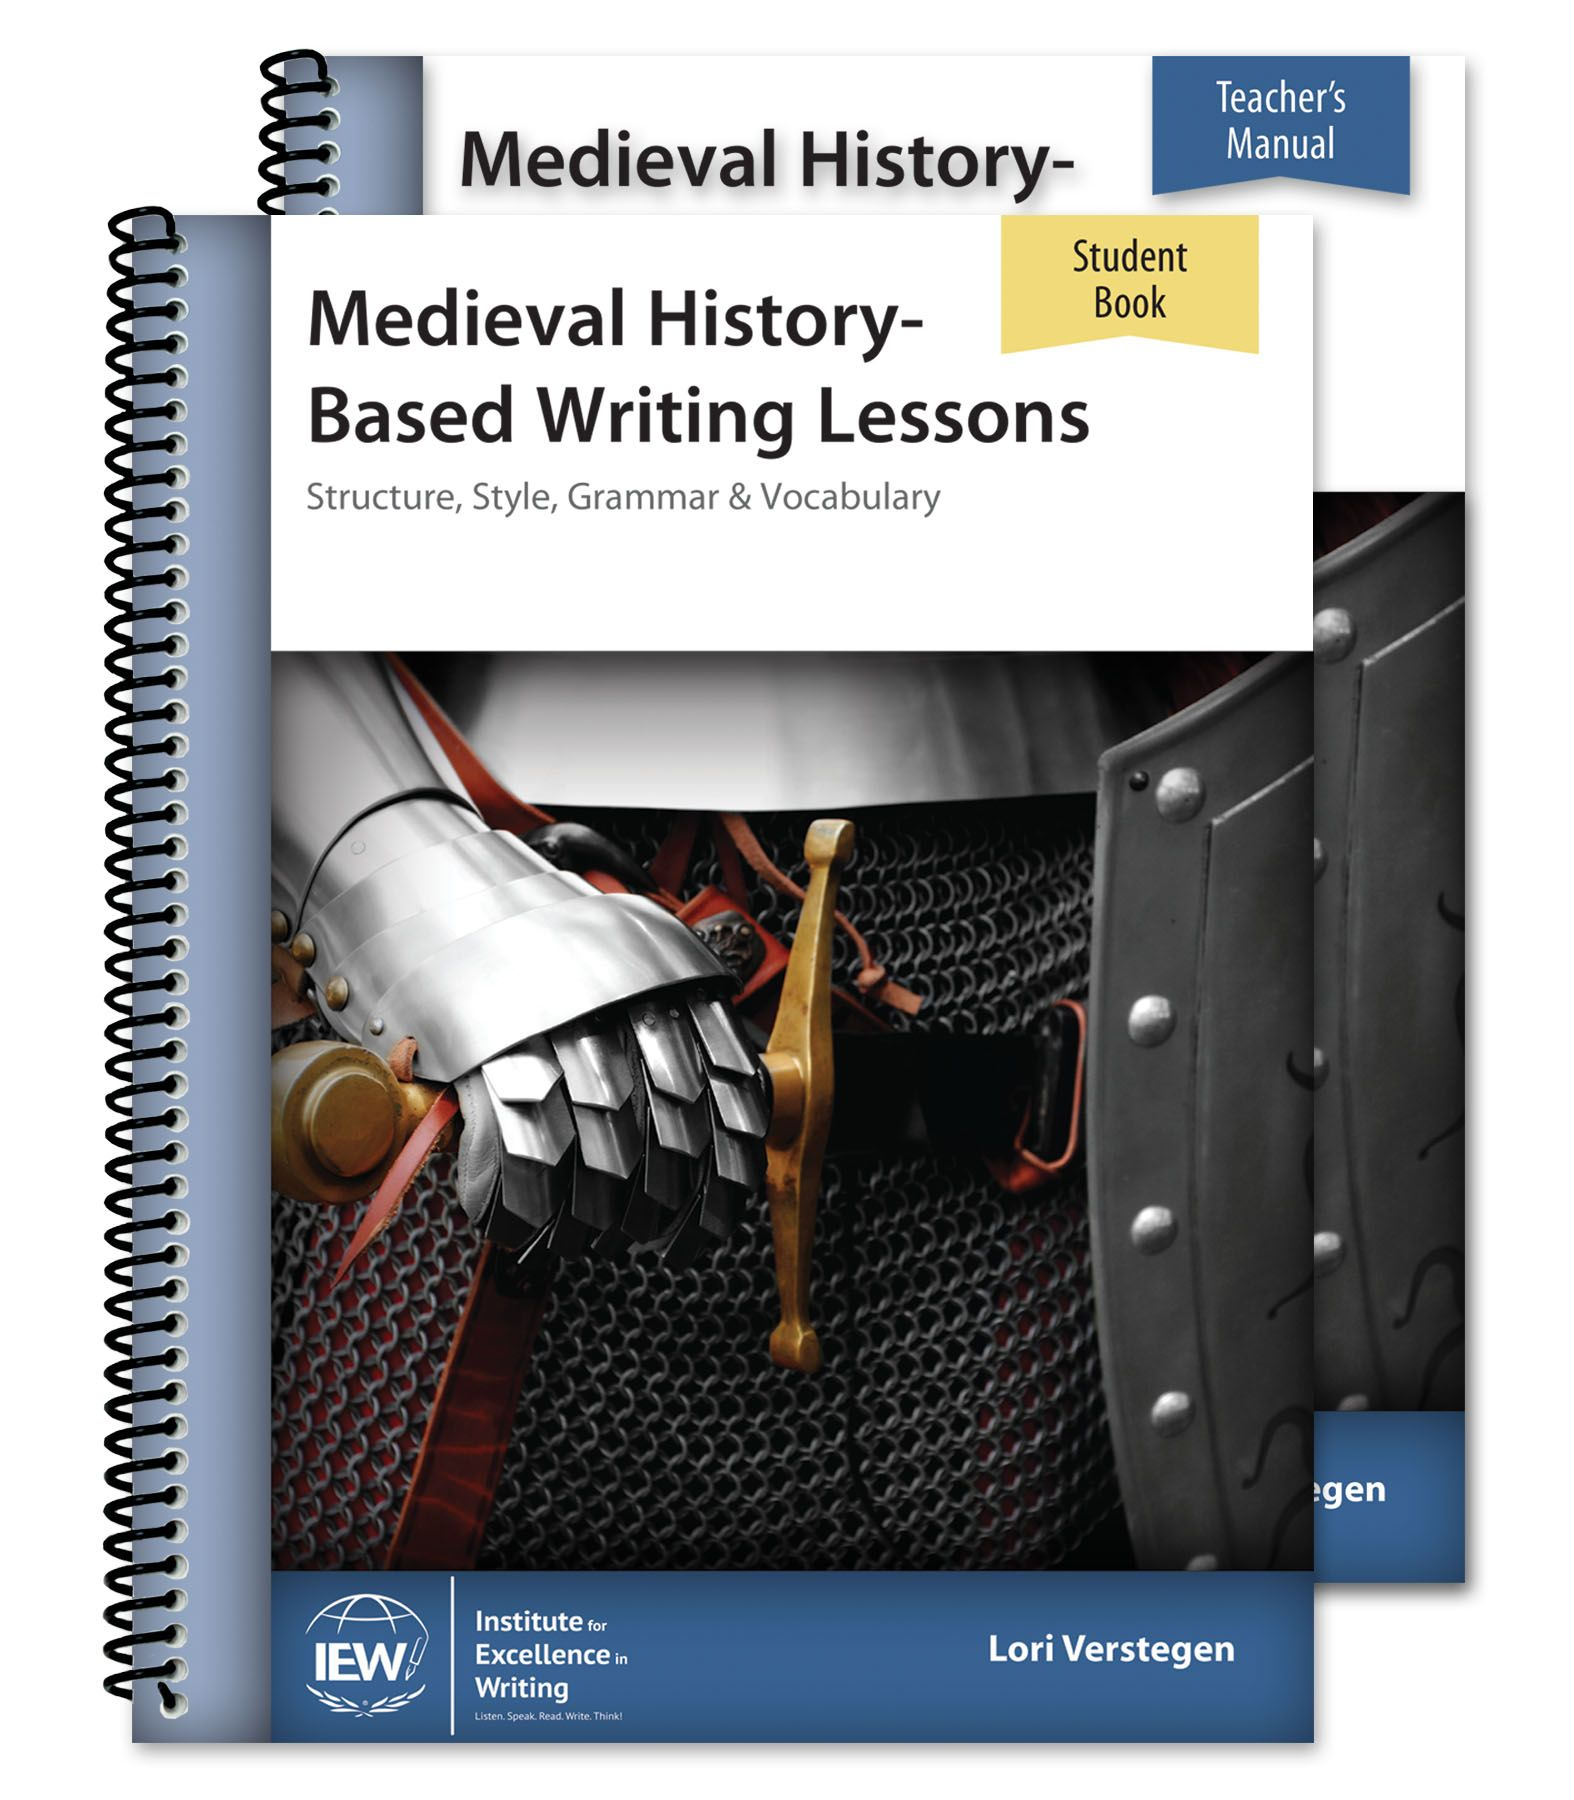 Me Val History Based Writing Lessons From Institute For